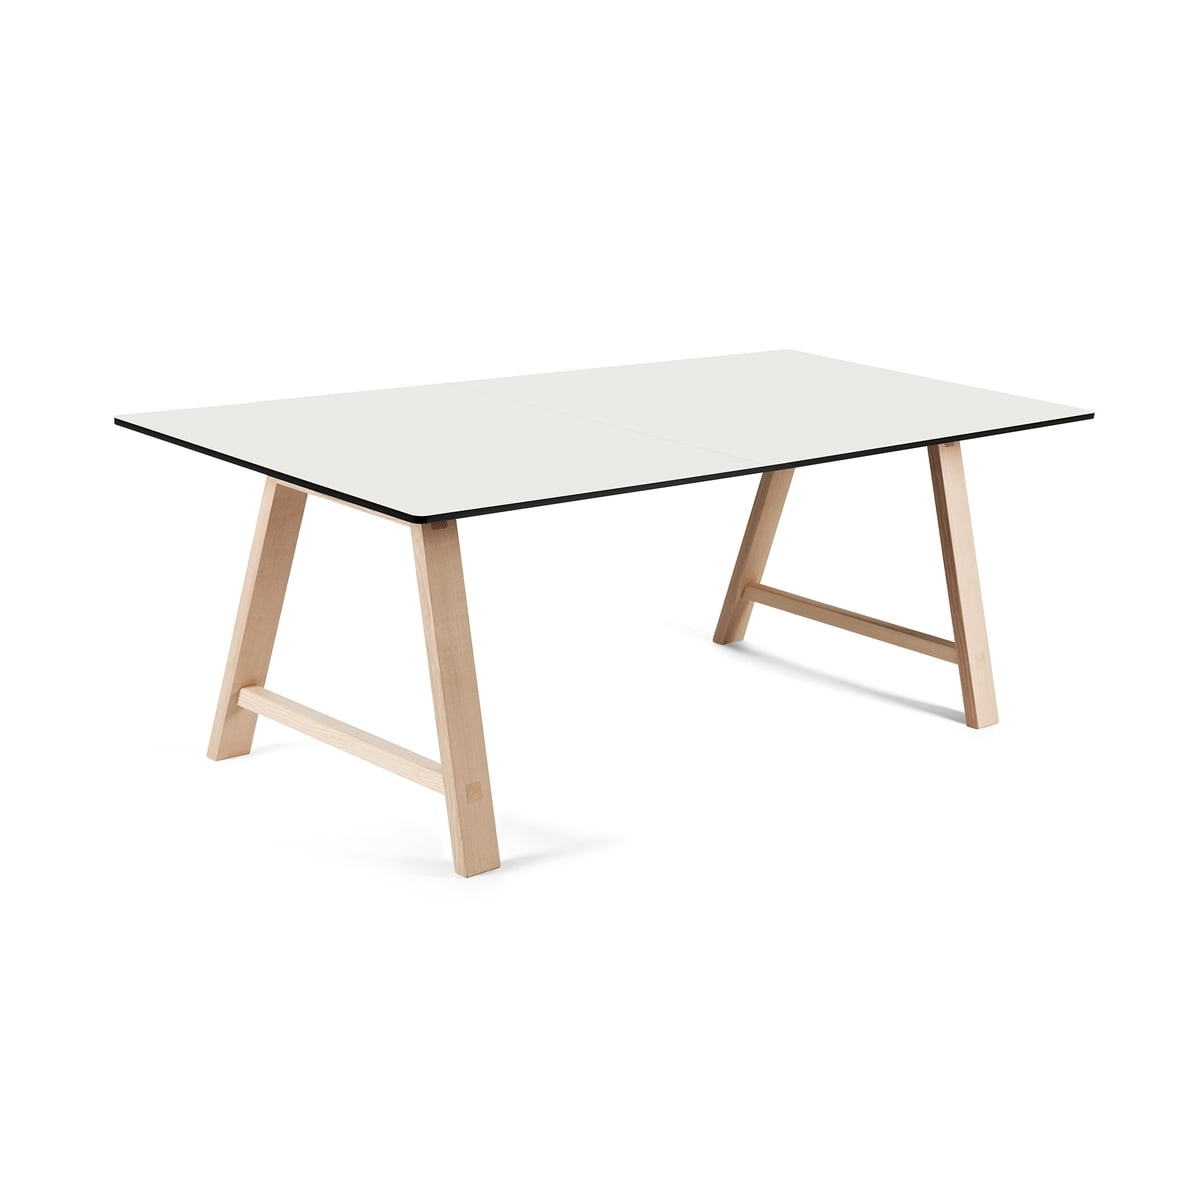 2017 Lassen Extension Rectangle Dining Tables Pertaining To Andersen Furniture – T1 Ausziehtisch 160Cm, Eiche Geseift / Laminat Weiß (Gallery 21 of 25)